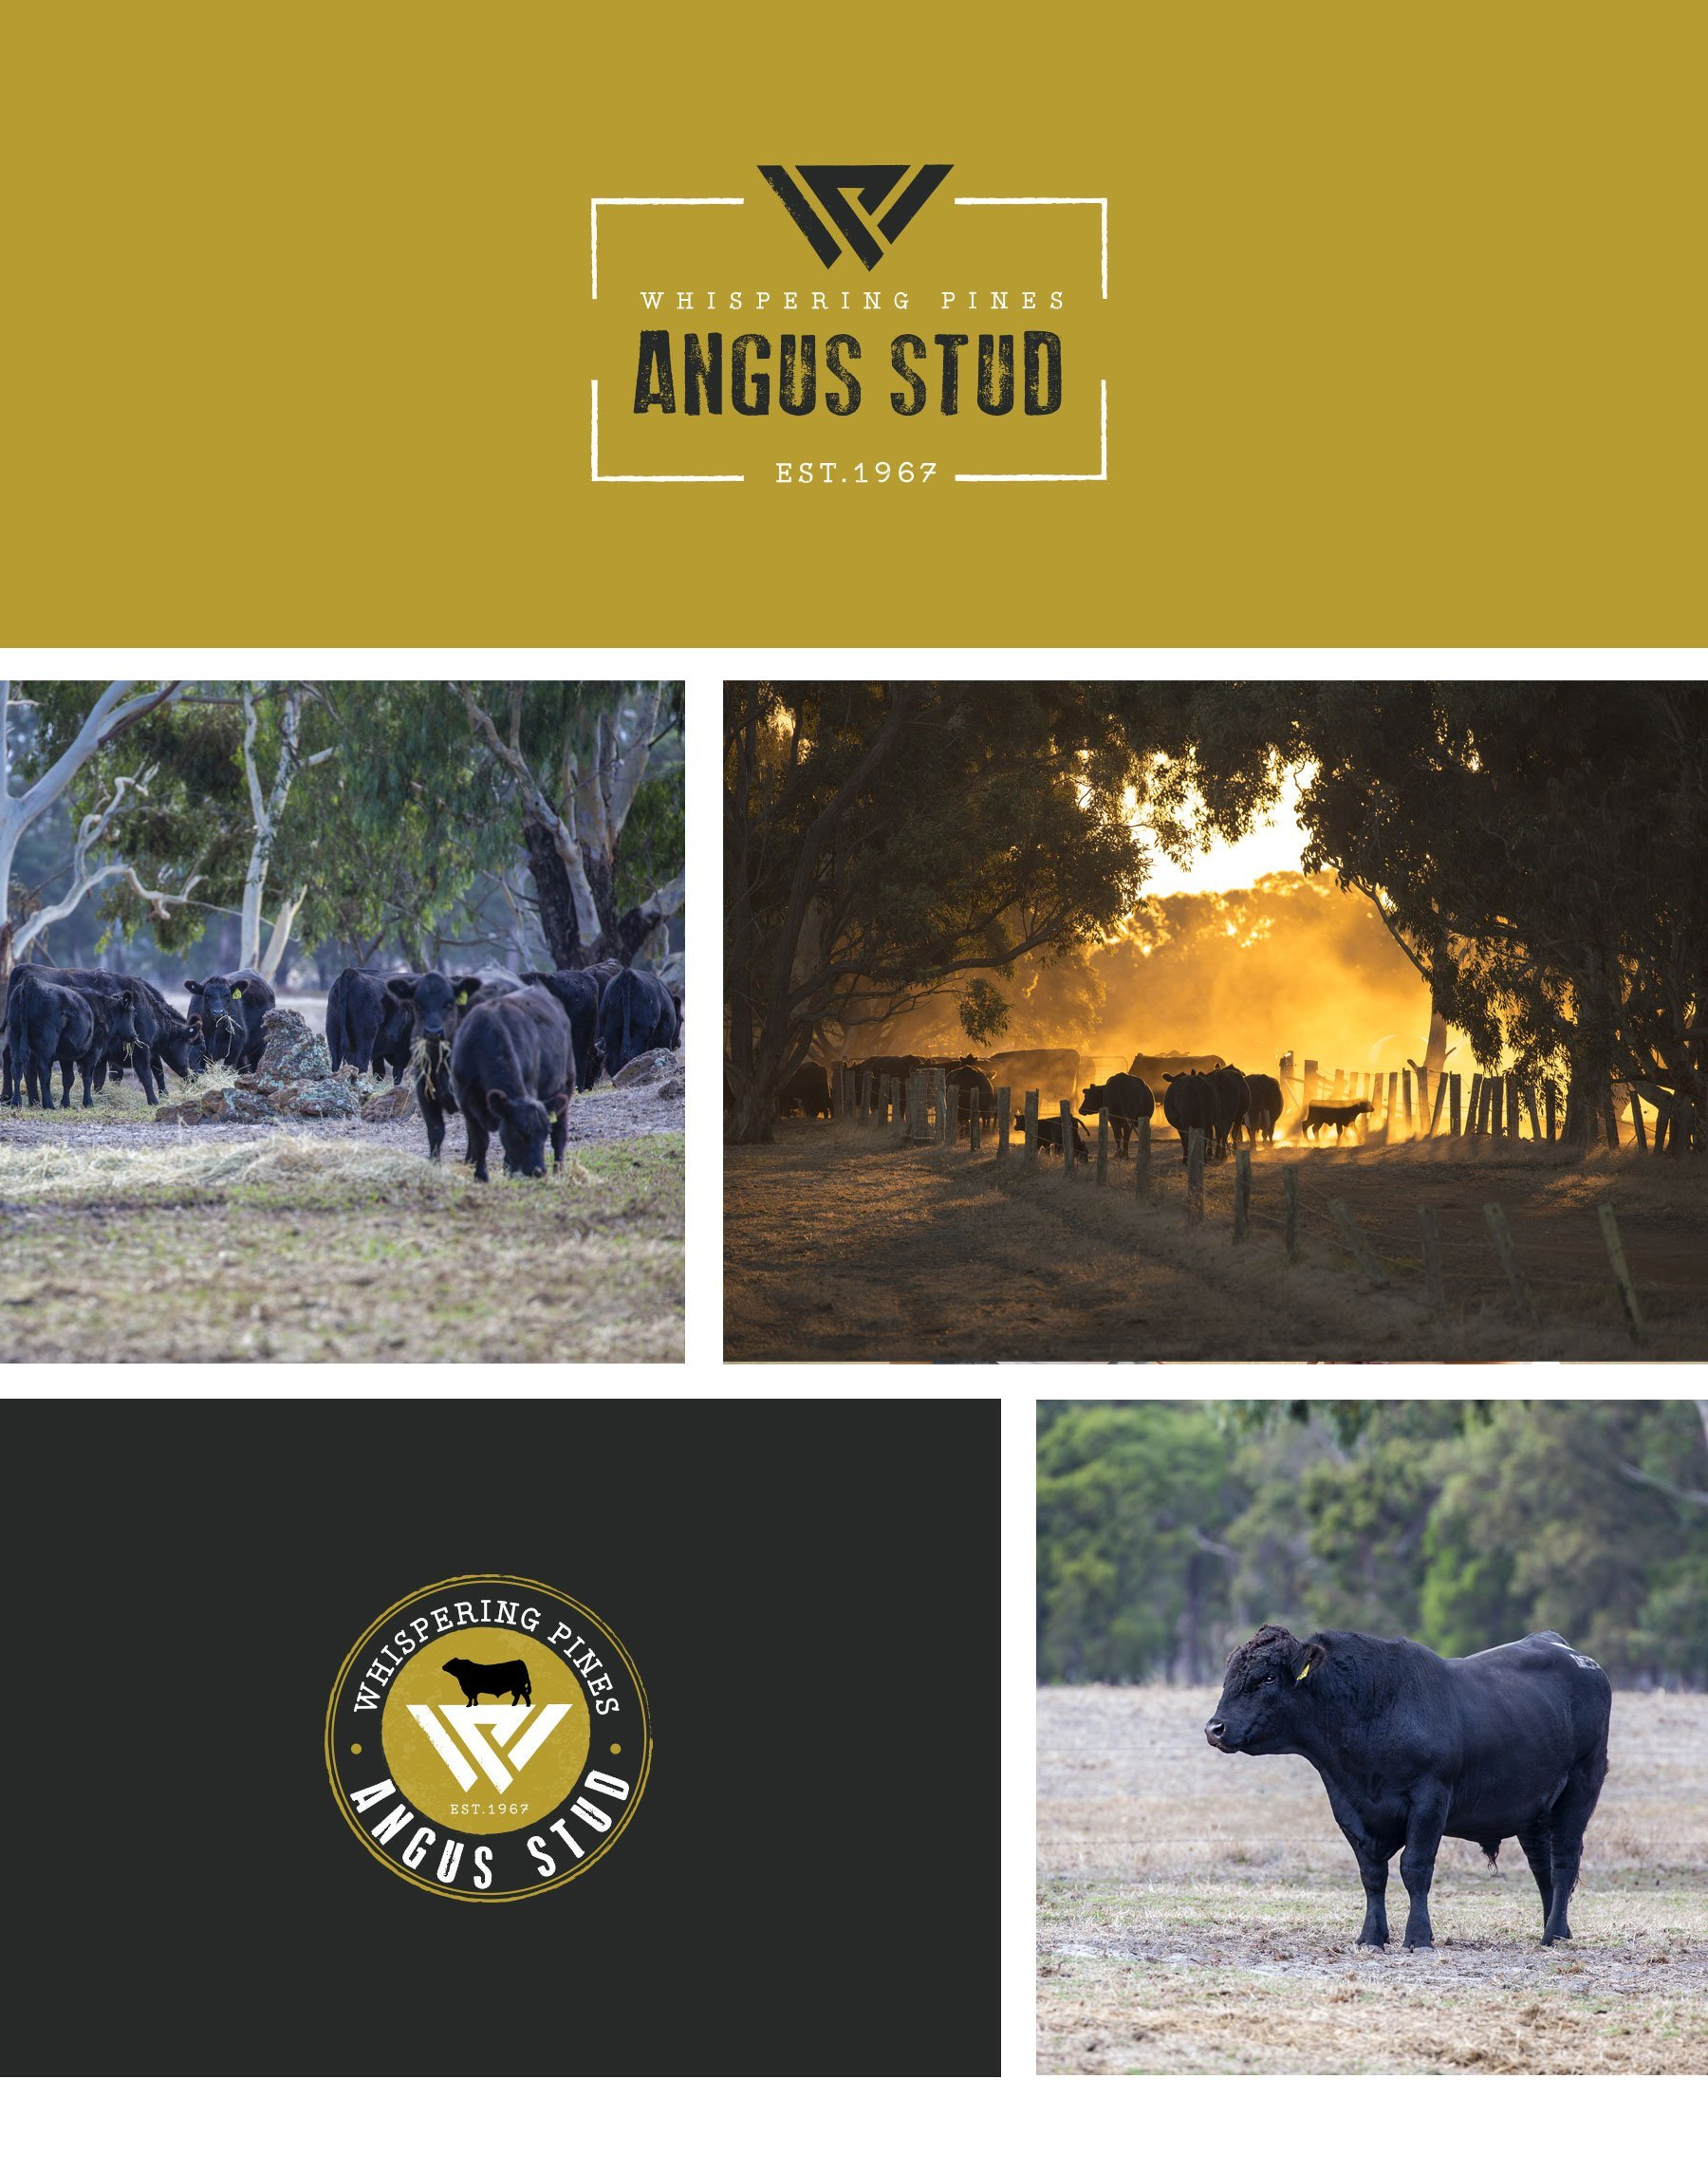 New Whispering Pines Angus Stud Busselton